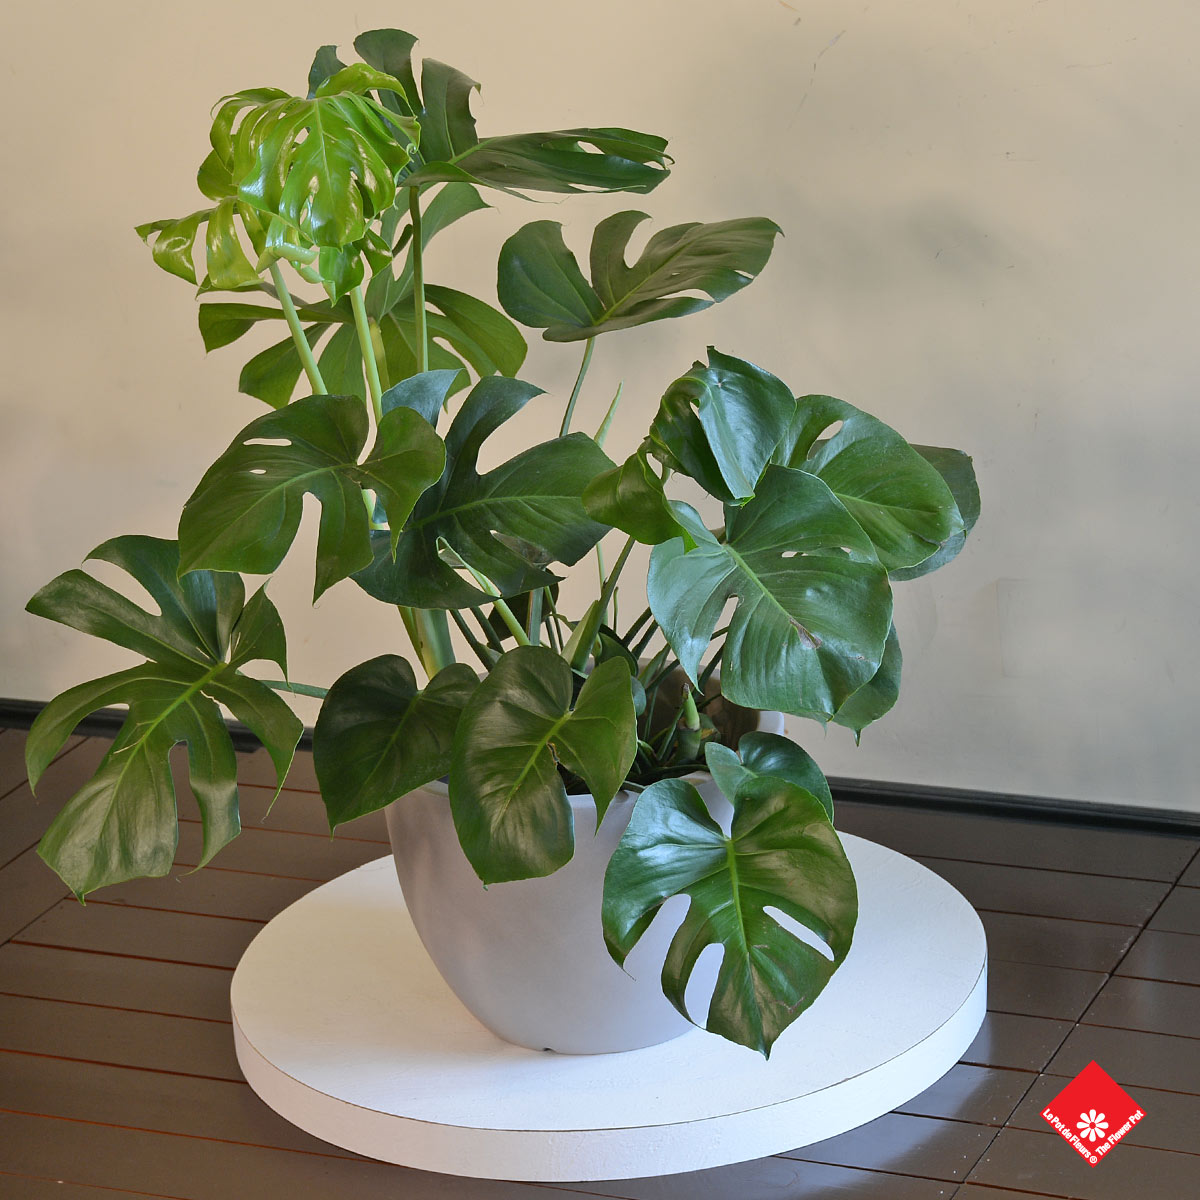 The Monstera deliciosa is the answer to all your current and future houseplant needs. You can get one from The Flower Pot for your Montreal home.